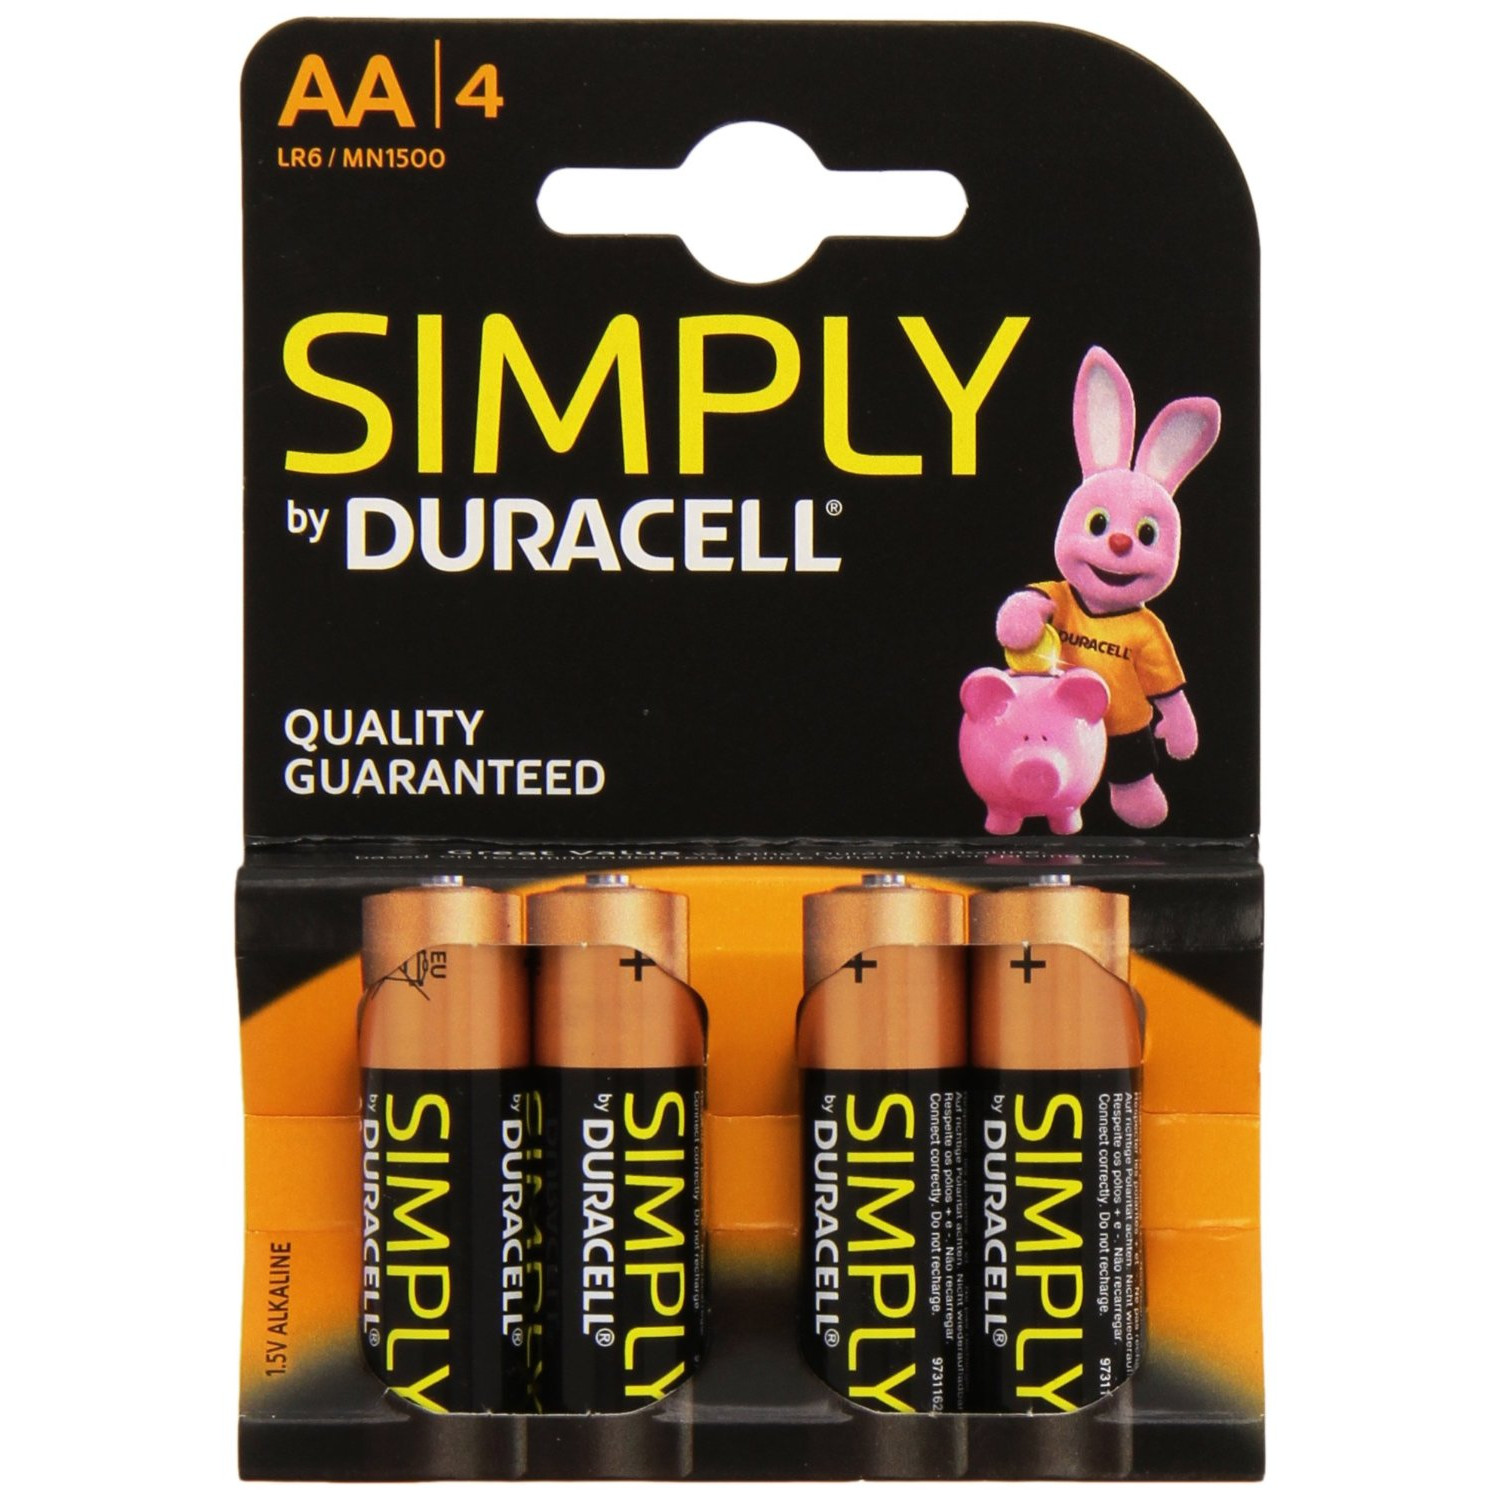 DURACELL SIMPLY ALKALINE AA/4